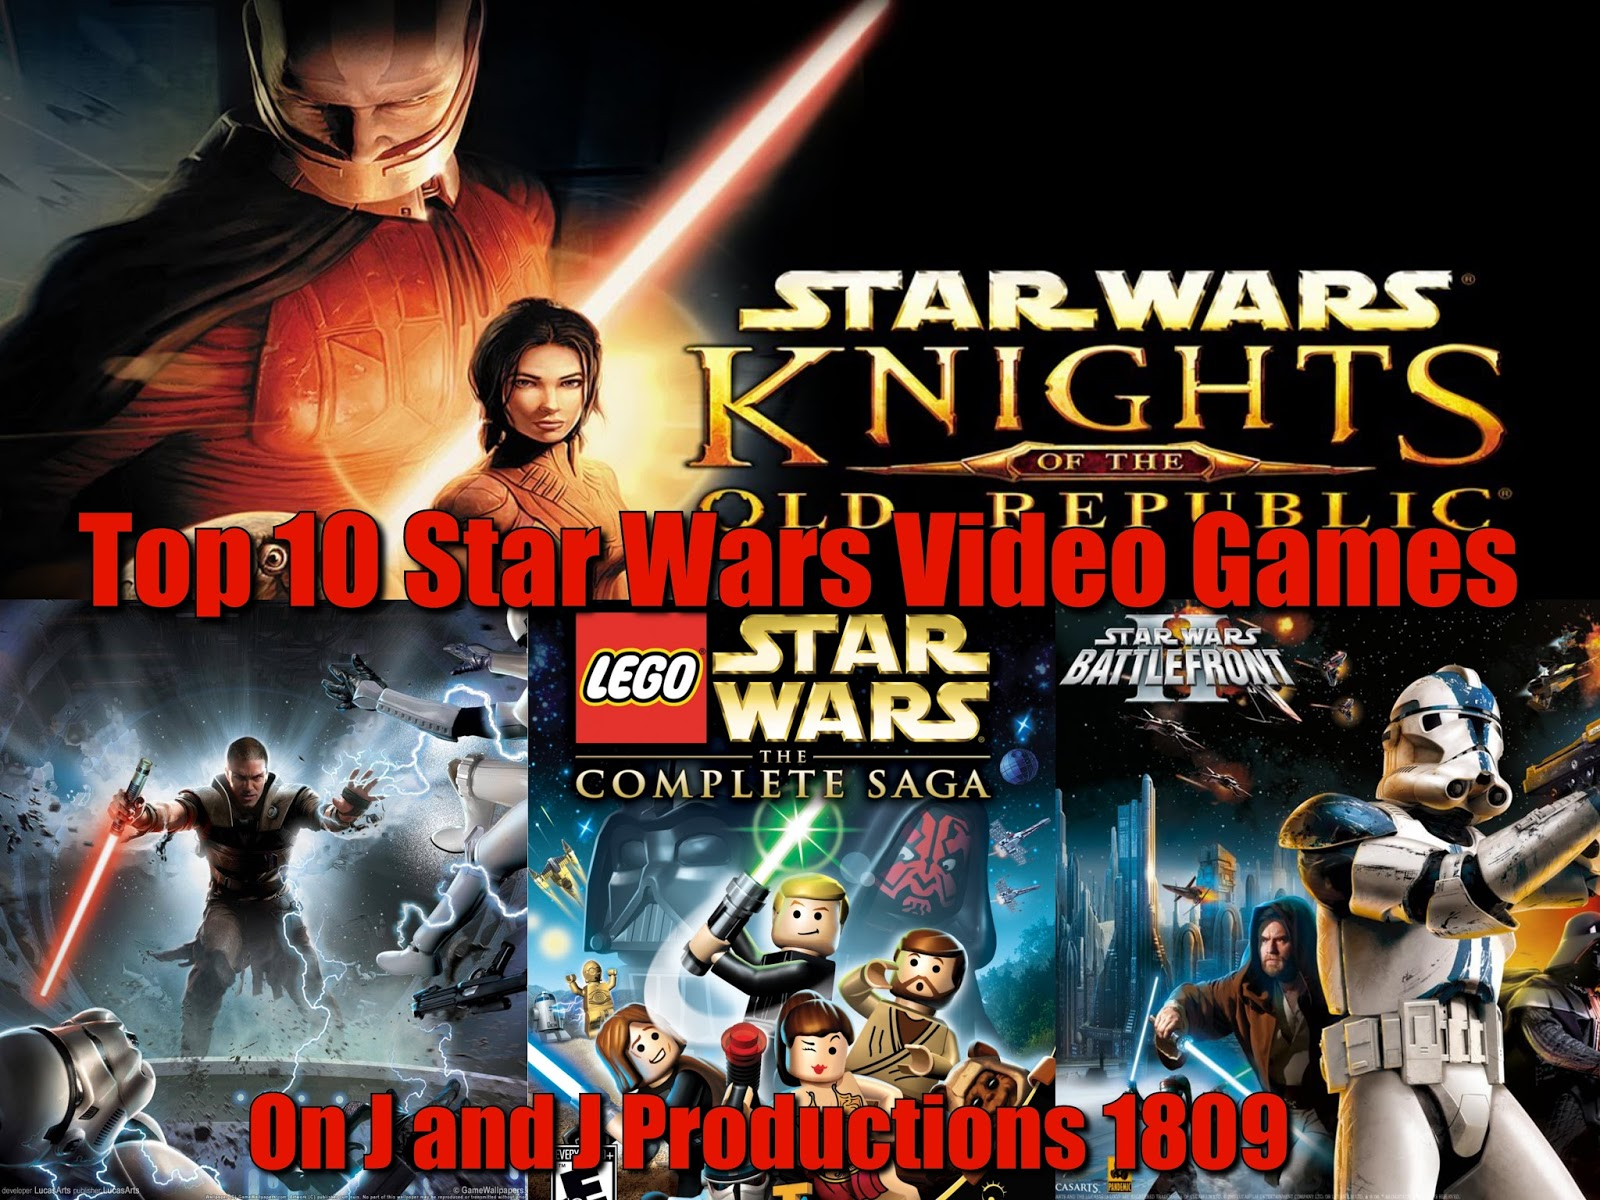 Star Wars Video Games 68